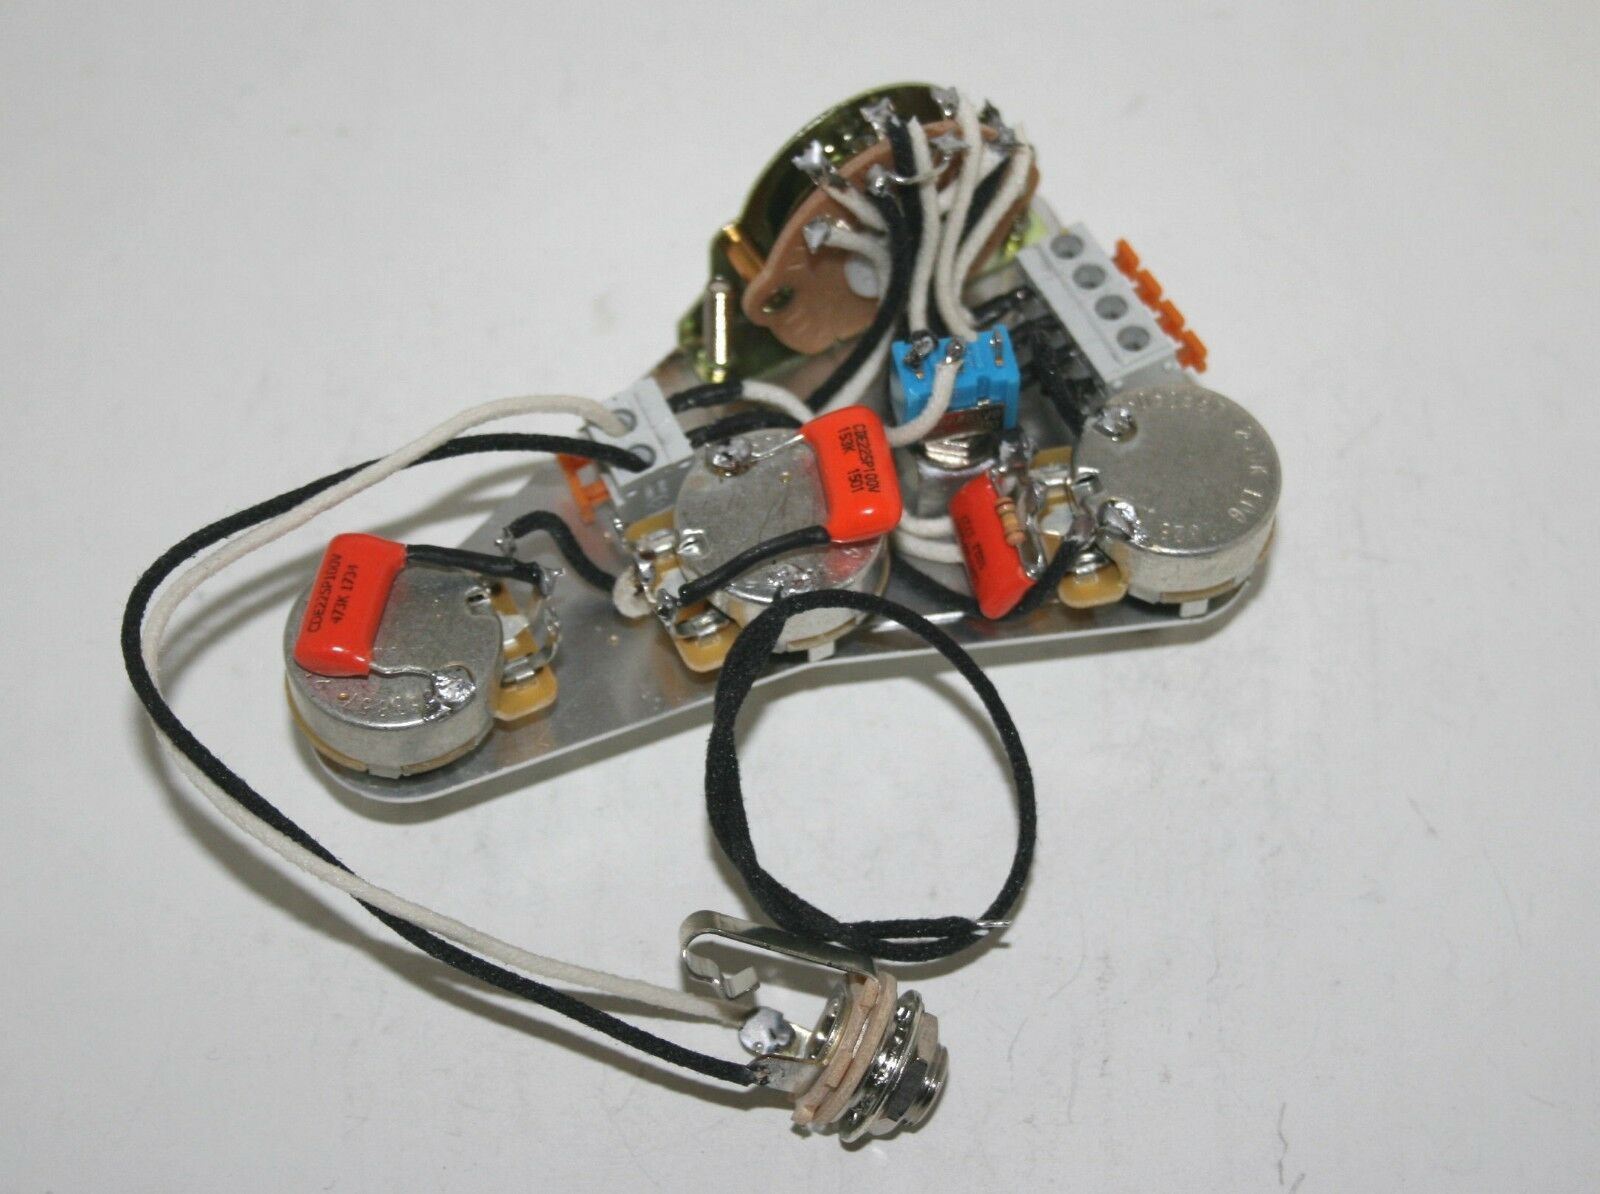 David Gilmour Usa Fender Stratocaster Solderless Wiring Loom Harness